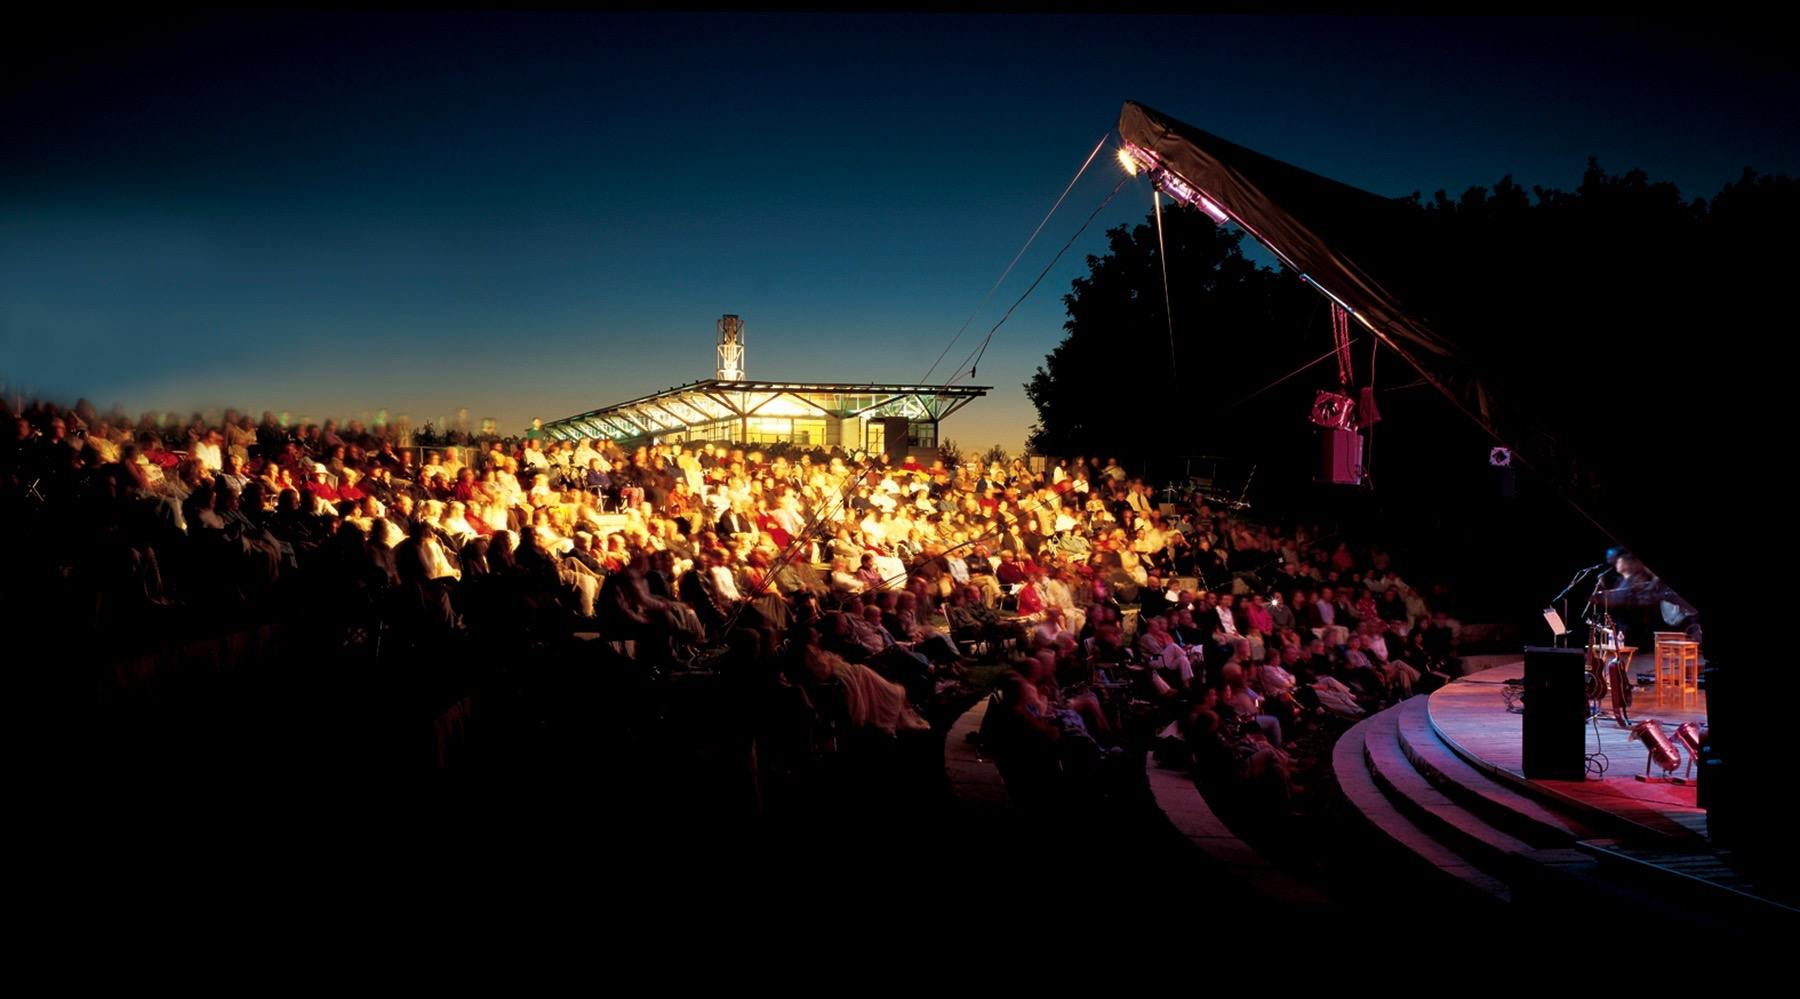 There's an amazing lineup for a concert series at a wine vineyard's Amphitheatre this summer